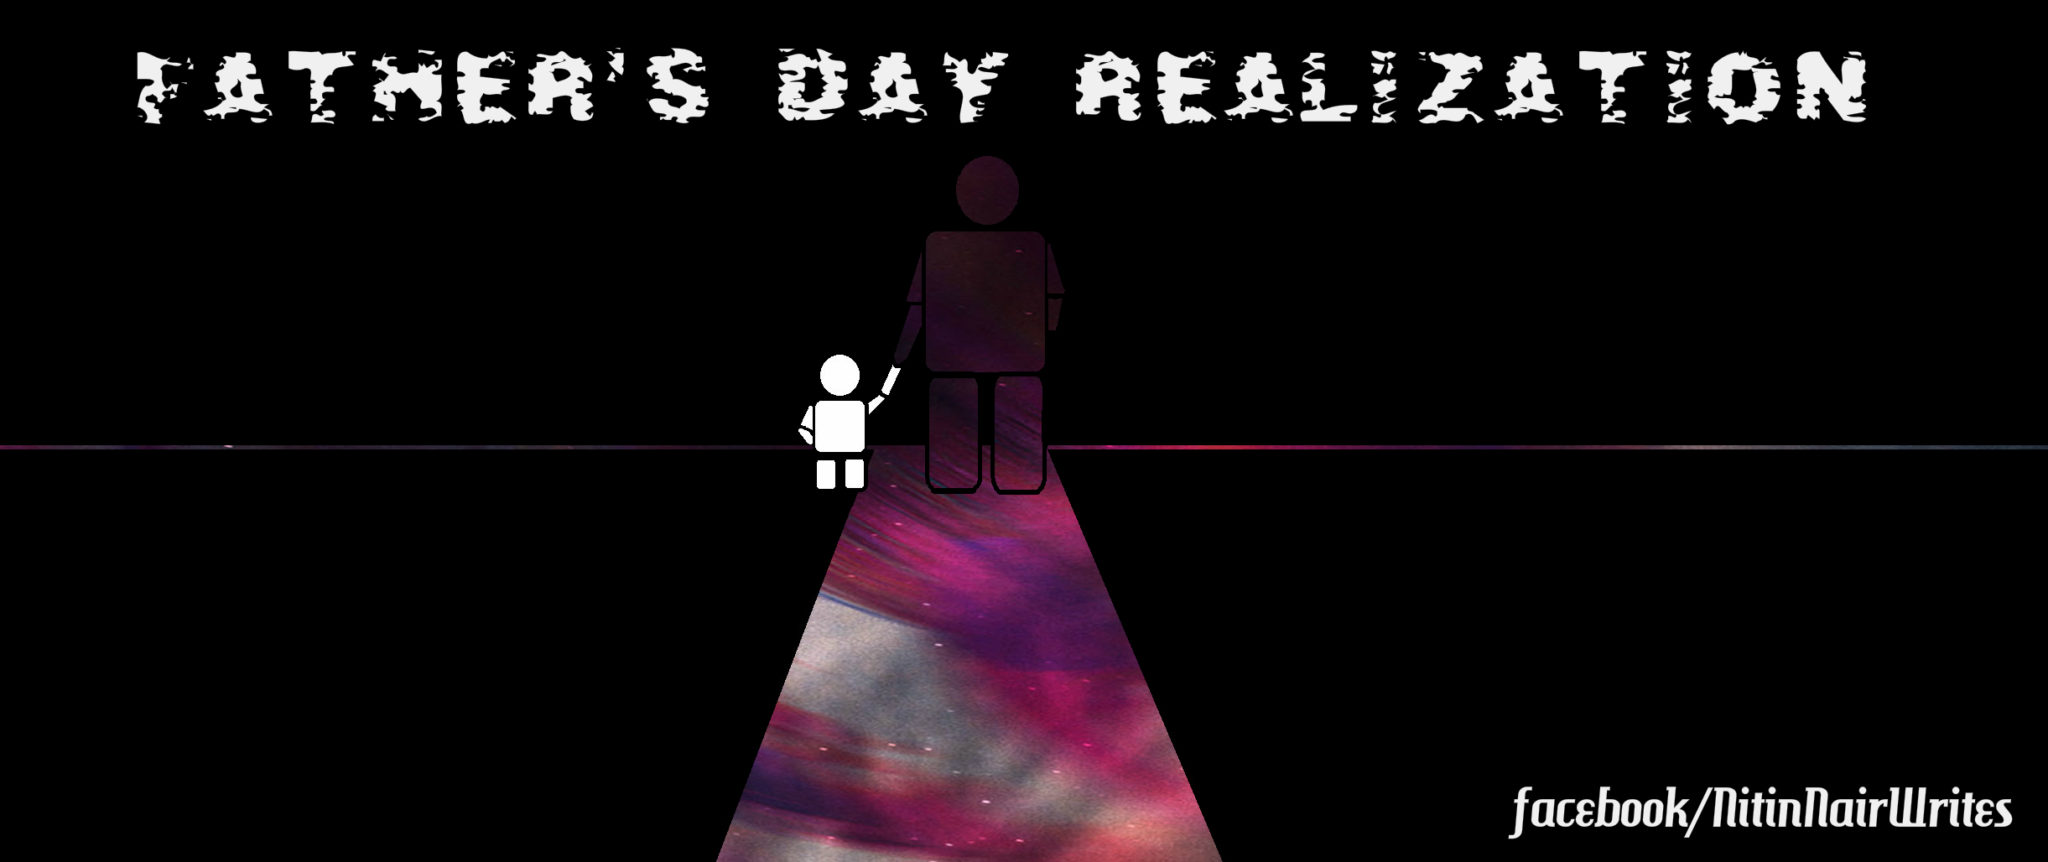 Father's Day Realization